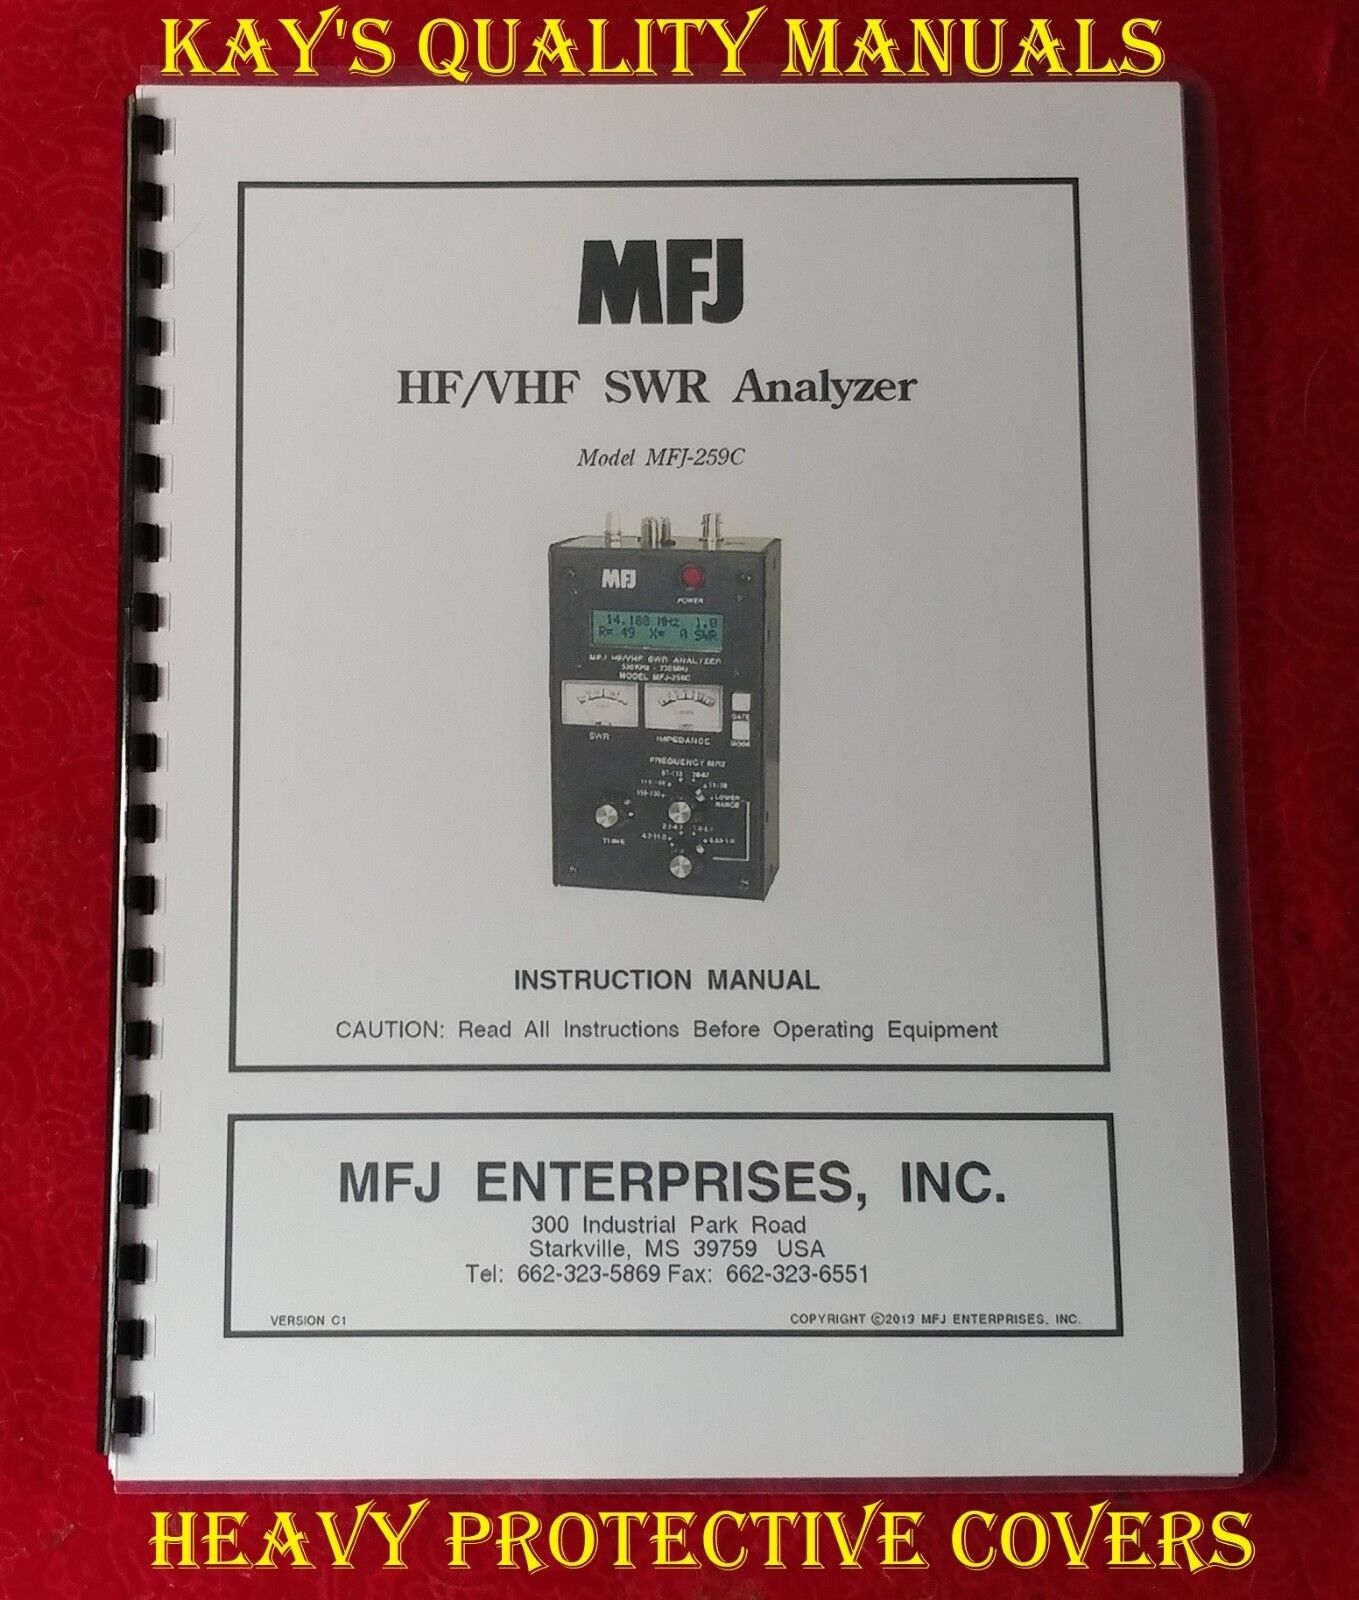 Highest Quality MFJ-259C HF/VHF SWR Analyzer Instruction Manual *ON 32LB PAPER*. Available Now for 22.95